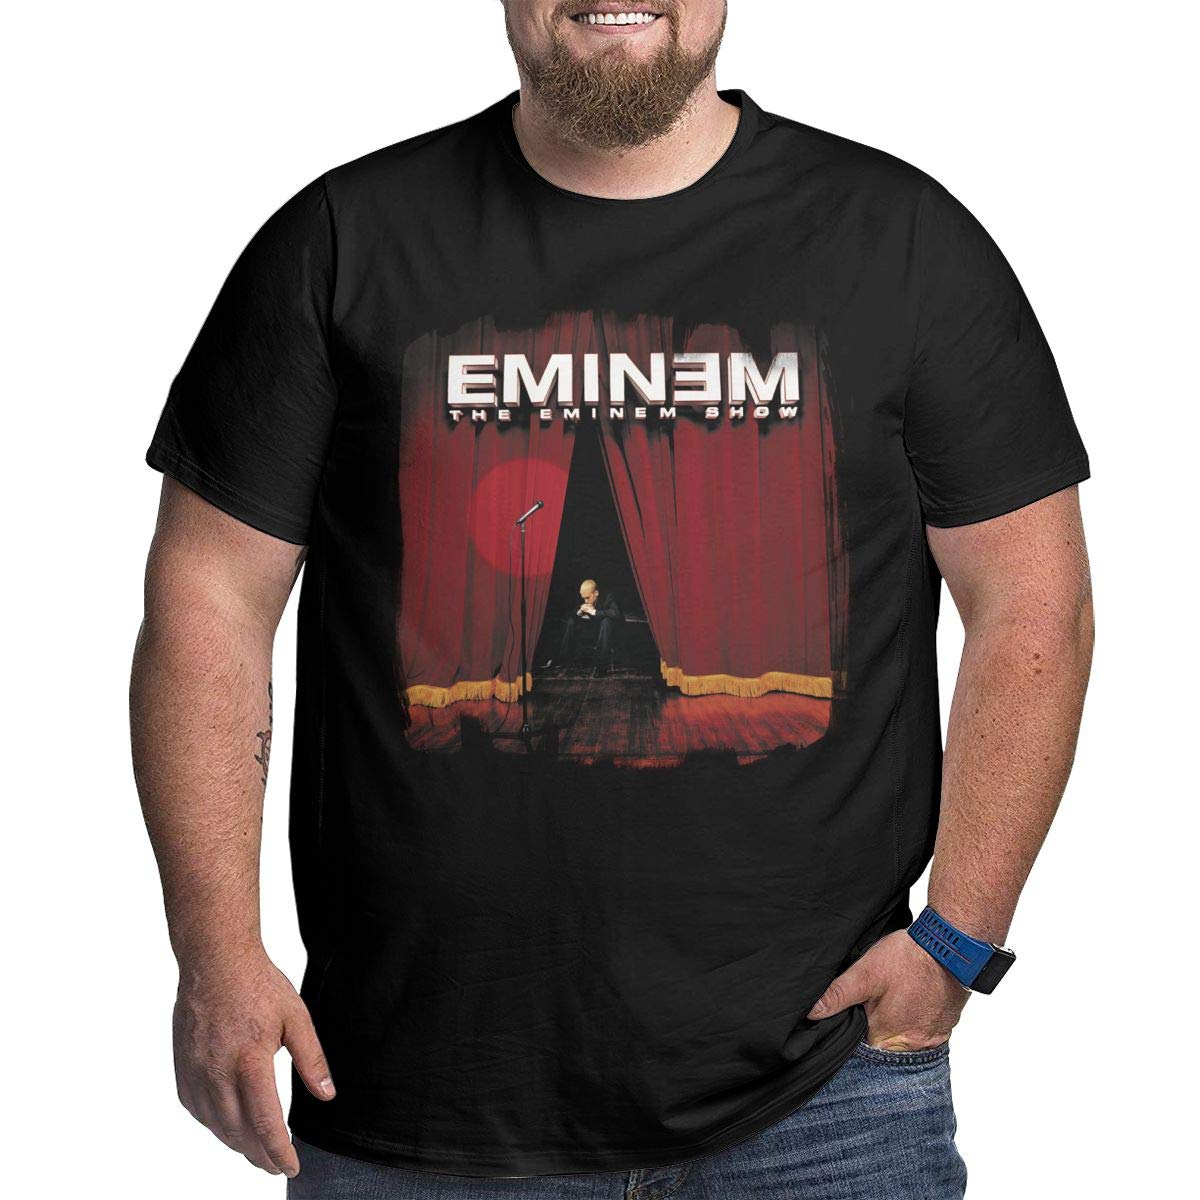 Matthewconnersw Man Big T Shirt The Eminem Show T Tennis Over T Shirts R Waist